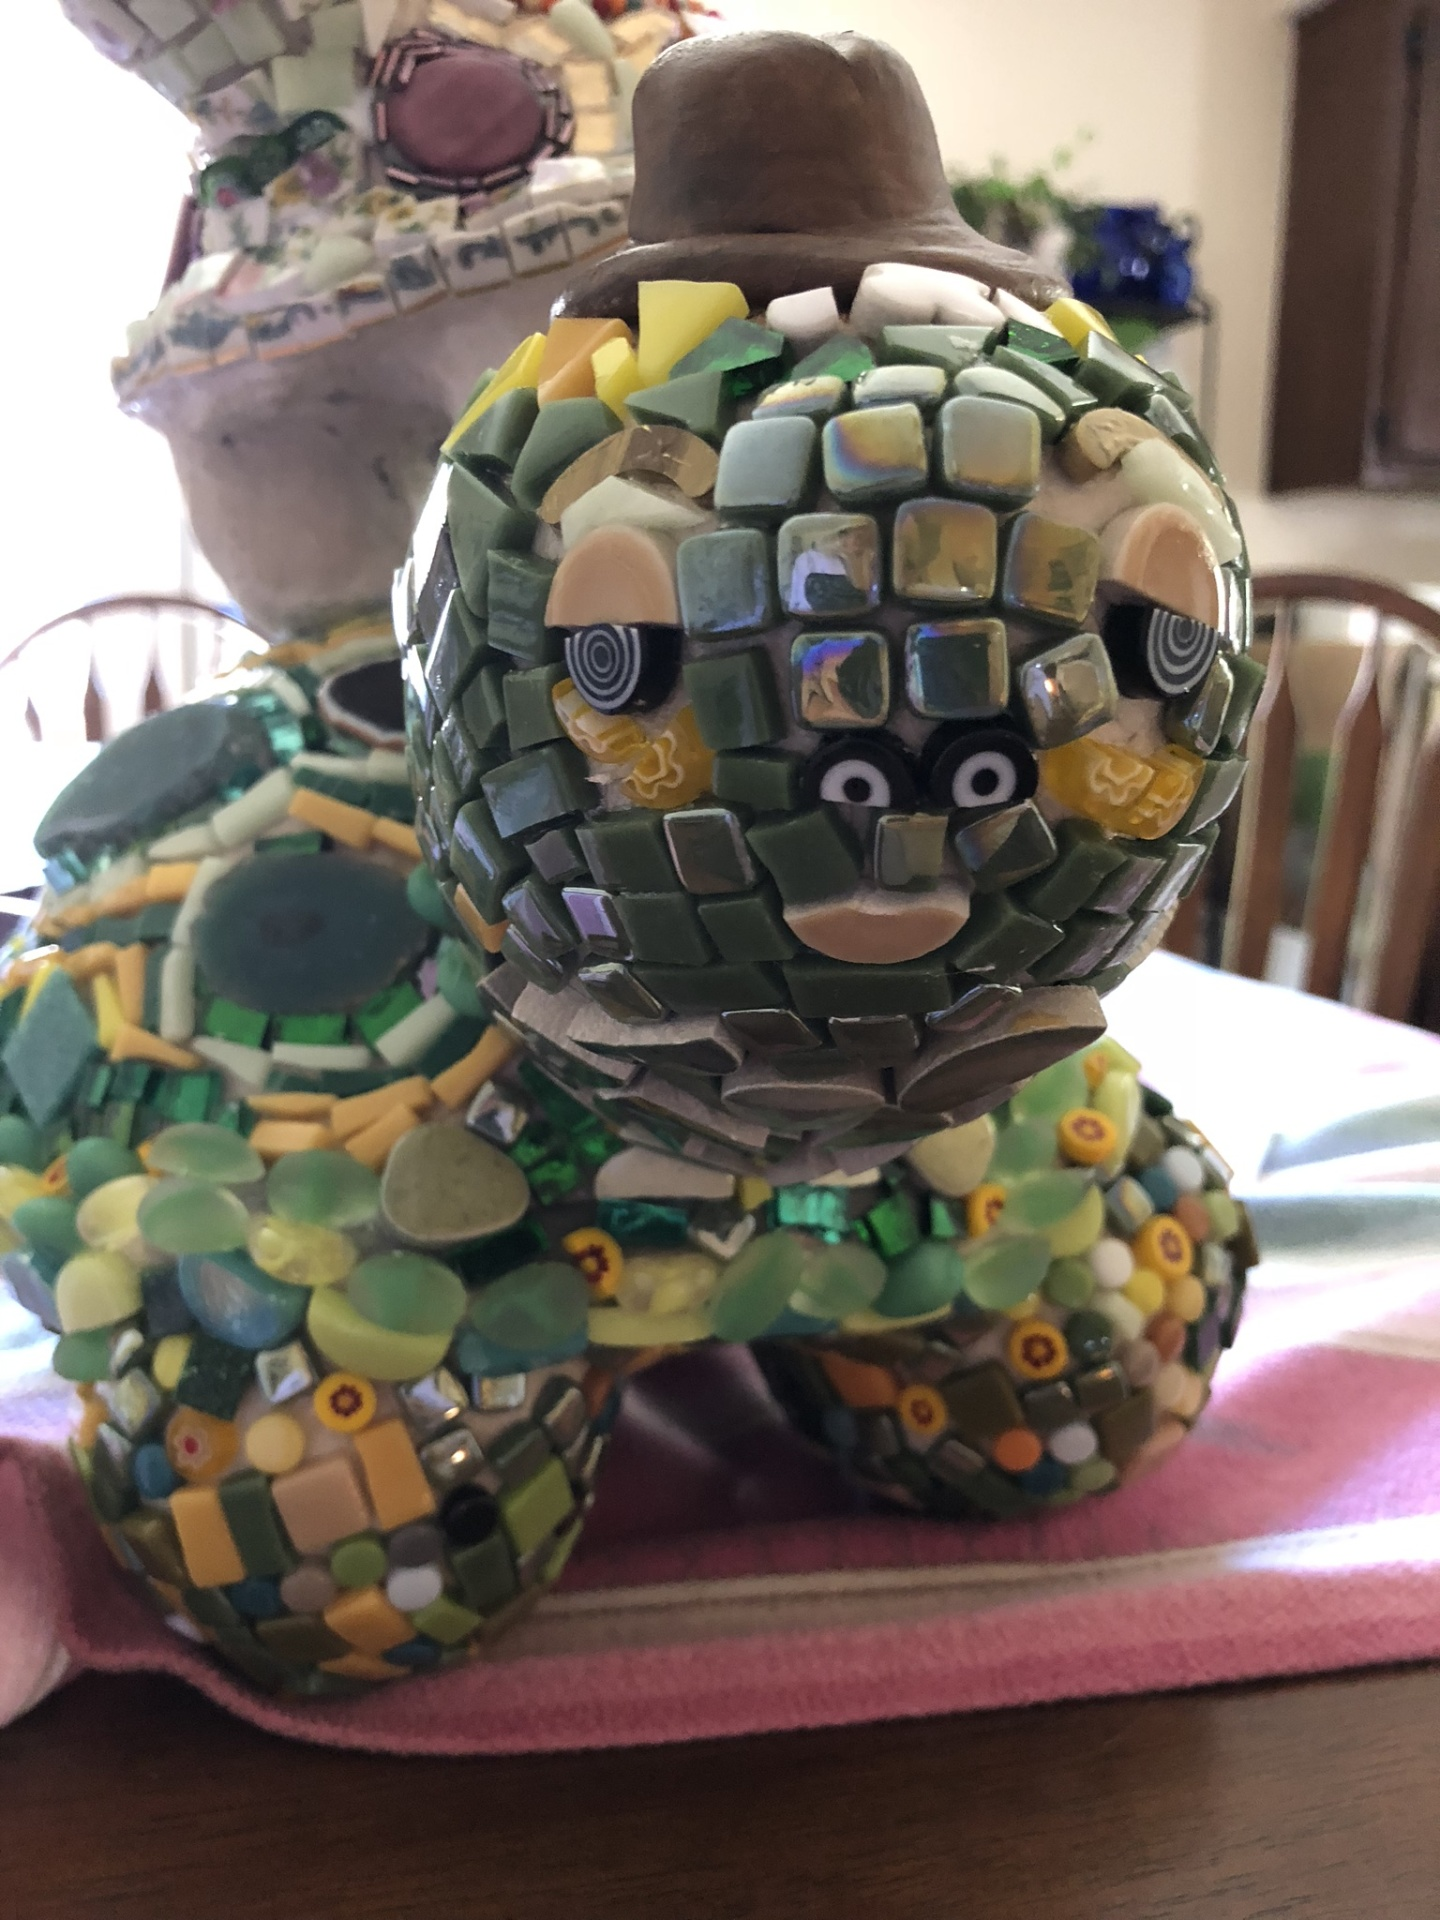 The turtle totem! A new sculpture with 3 turtles!